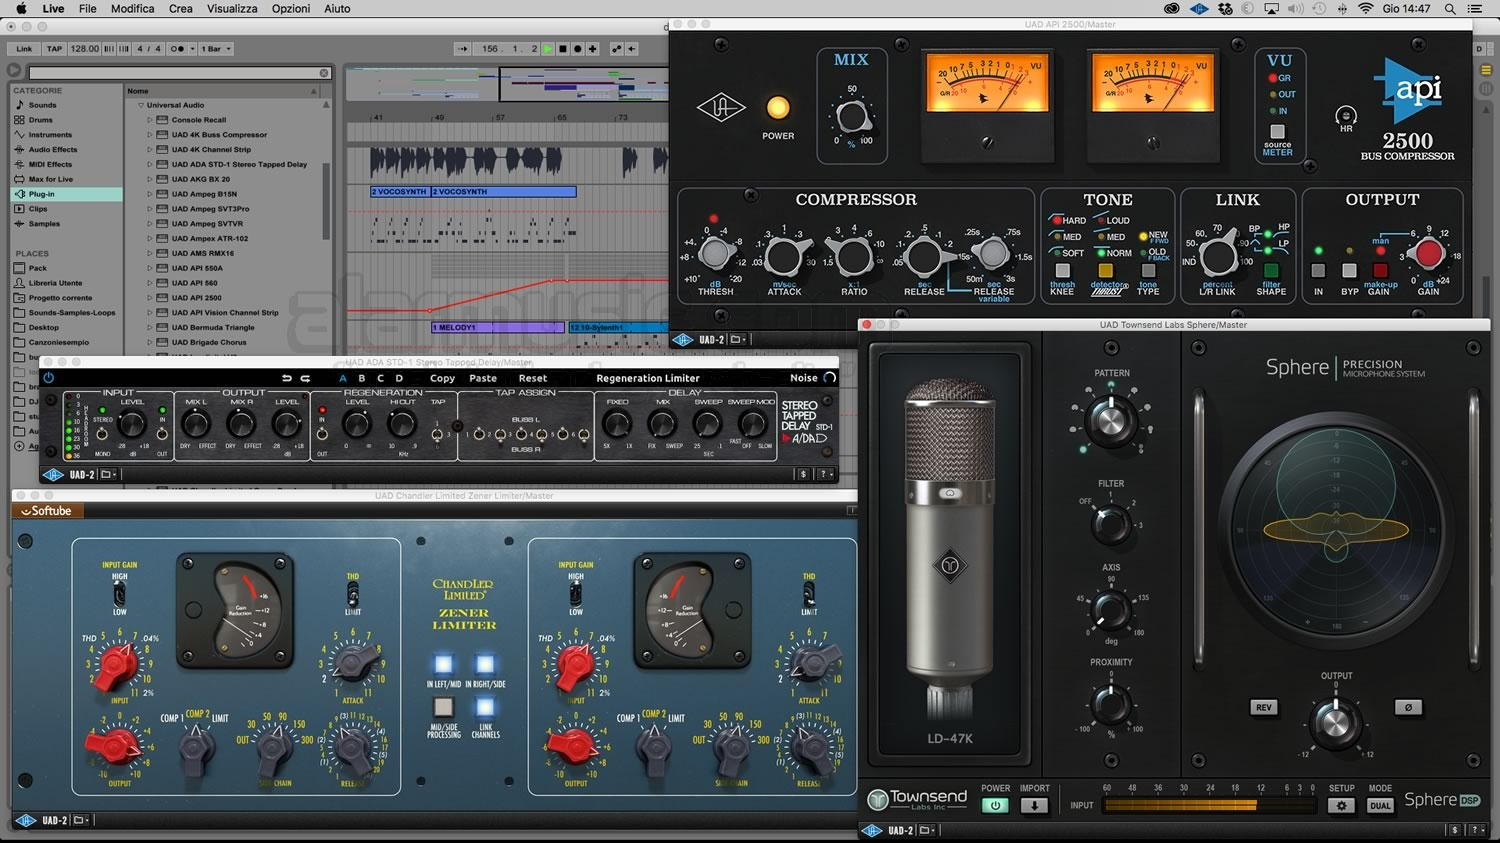 UAD SOFTWARE VERSIONE 9 PER APOLLO E SATELLITE UAD-2 BY UNIVERSAL AUDIO